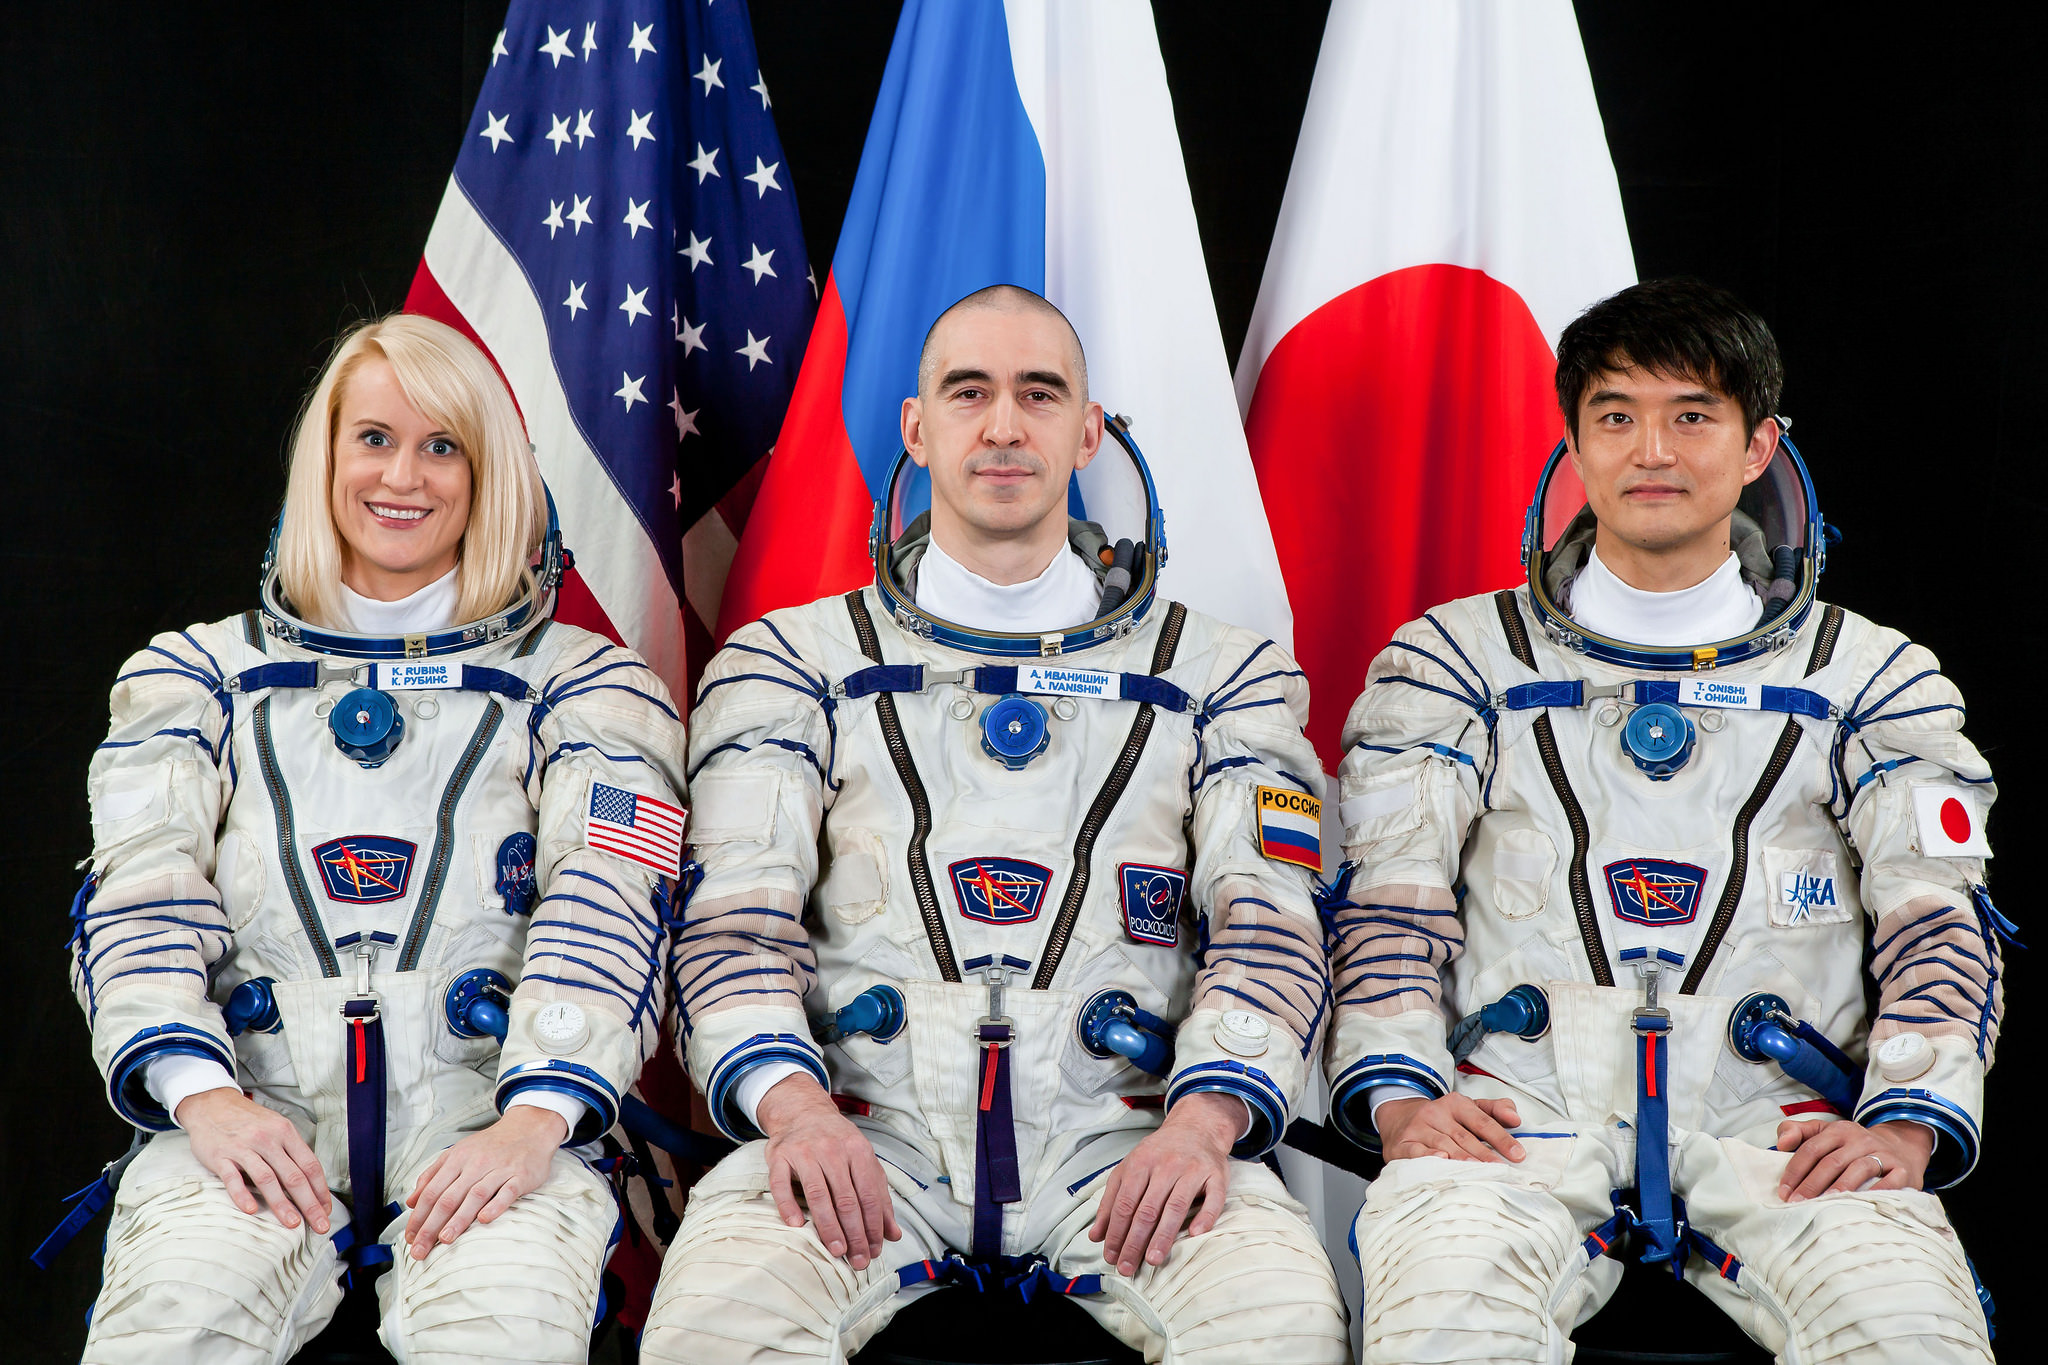 International Space Station Expedition 48/49 astronaut Kate Rubins of NASA, Russian cosmonaut Anatoly Ivanishin and Japan Aerospace Exploration Agency (JAXA) astronaut Takuya Onishi.  Credits: NASA